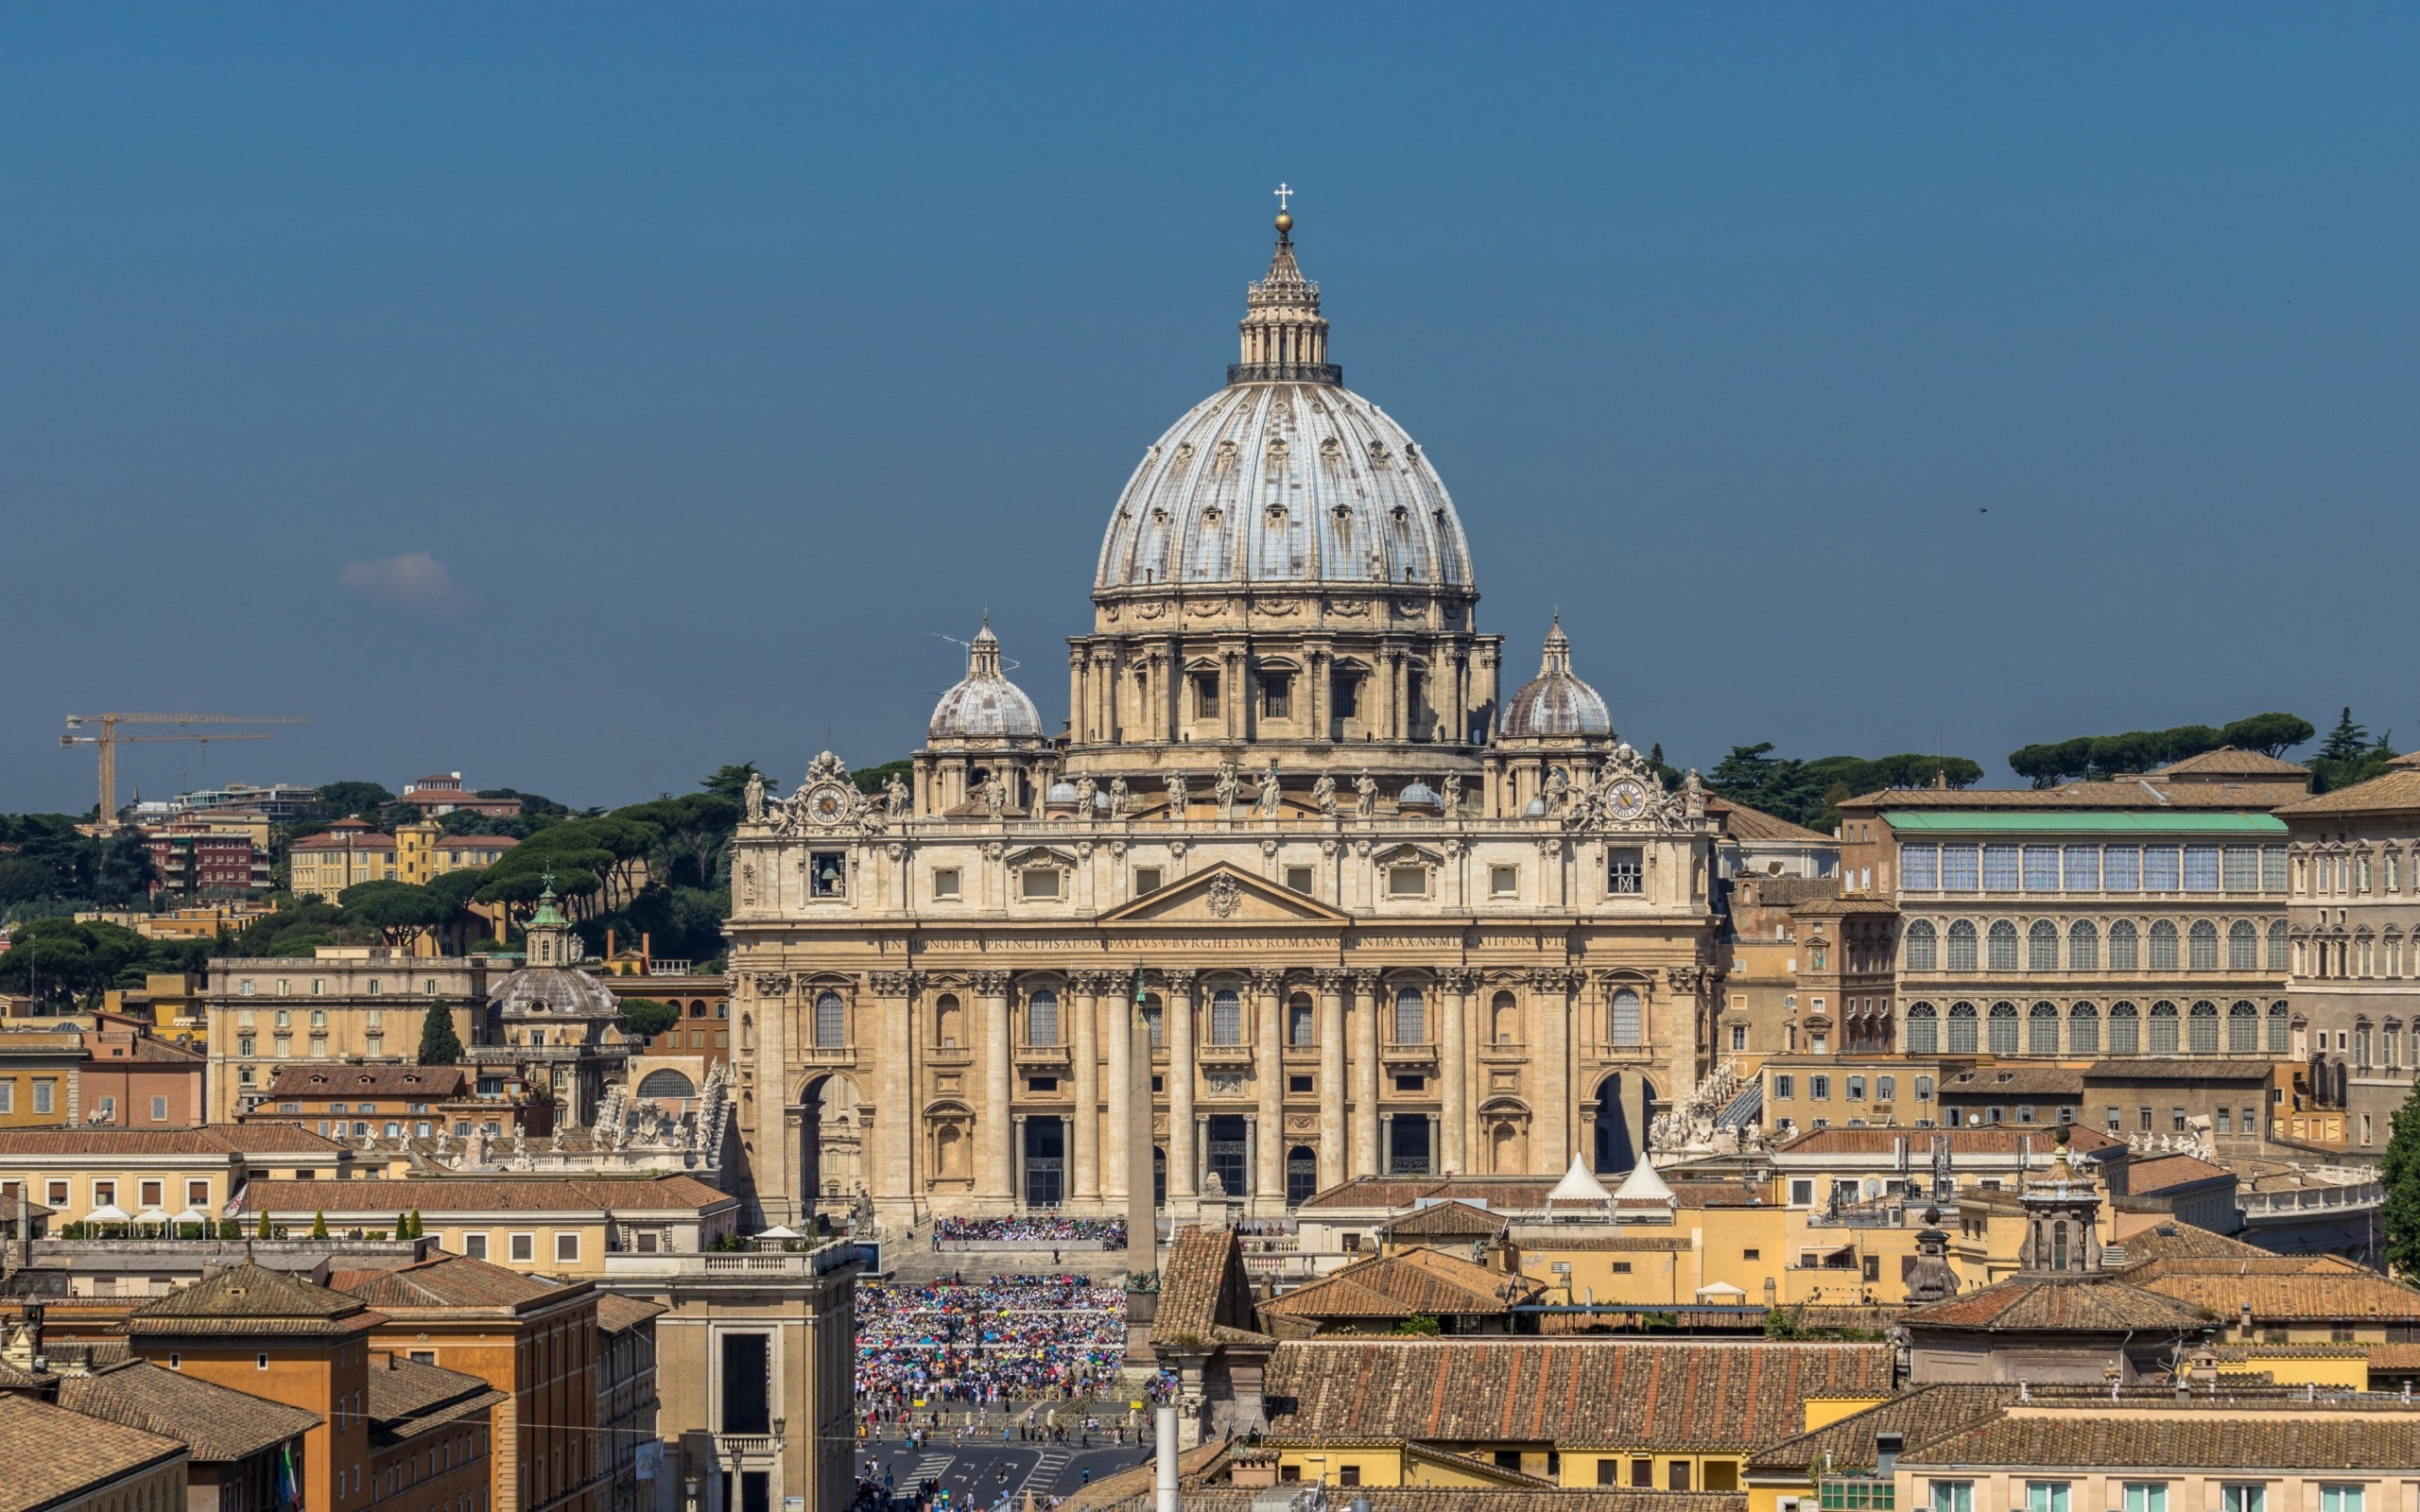 Res: 2560x1600, Saint Peters Basilica, Cathedral, Vatican, Rome, Italy, ancient  architecture, Baroque